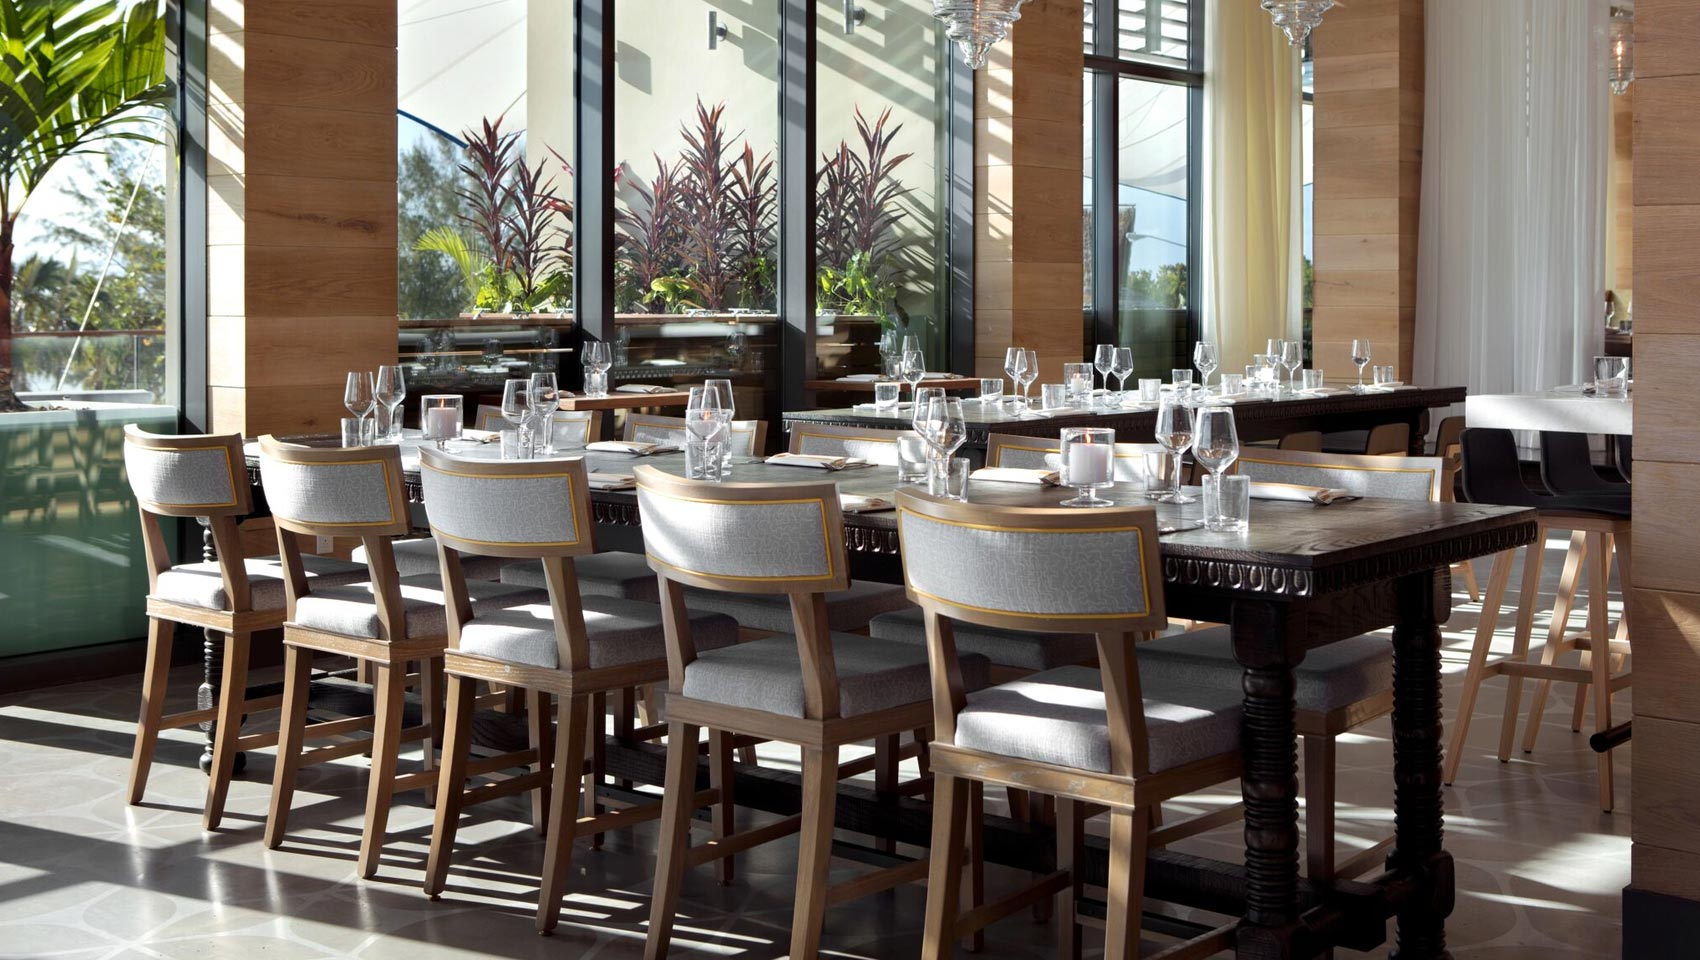 Ave Dining Room At Kimpton Seafire Resort And Spa